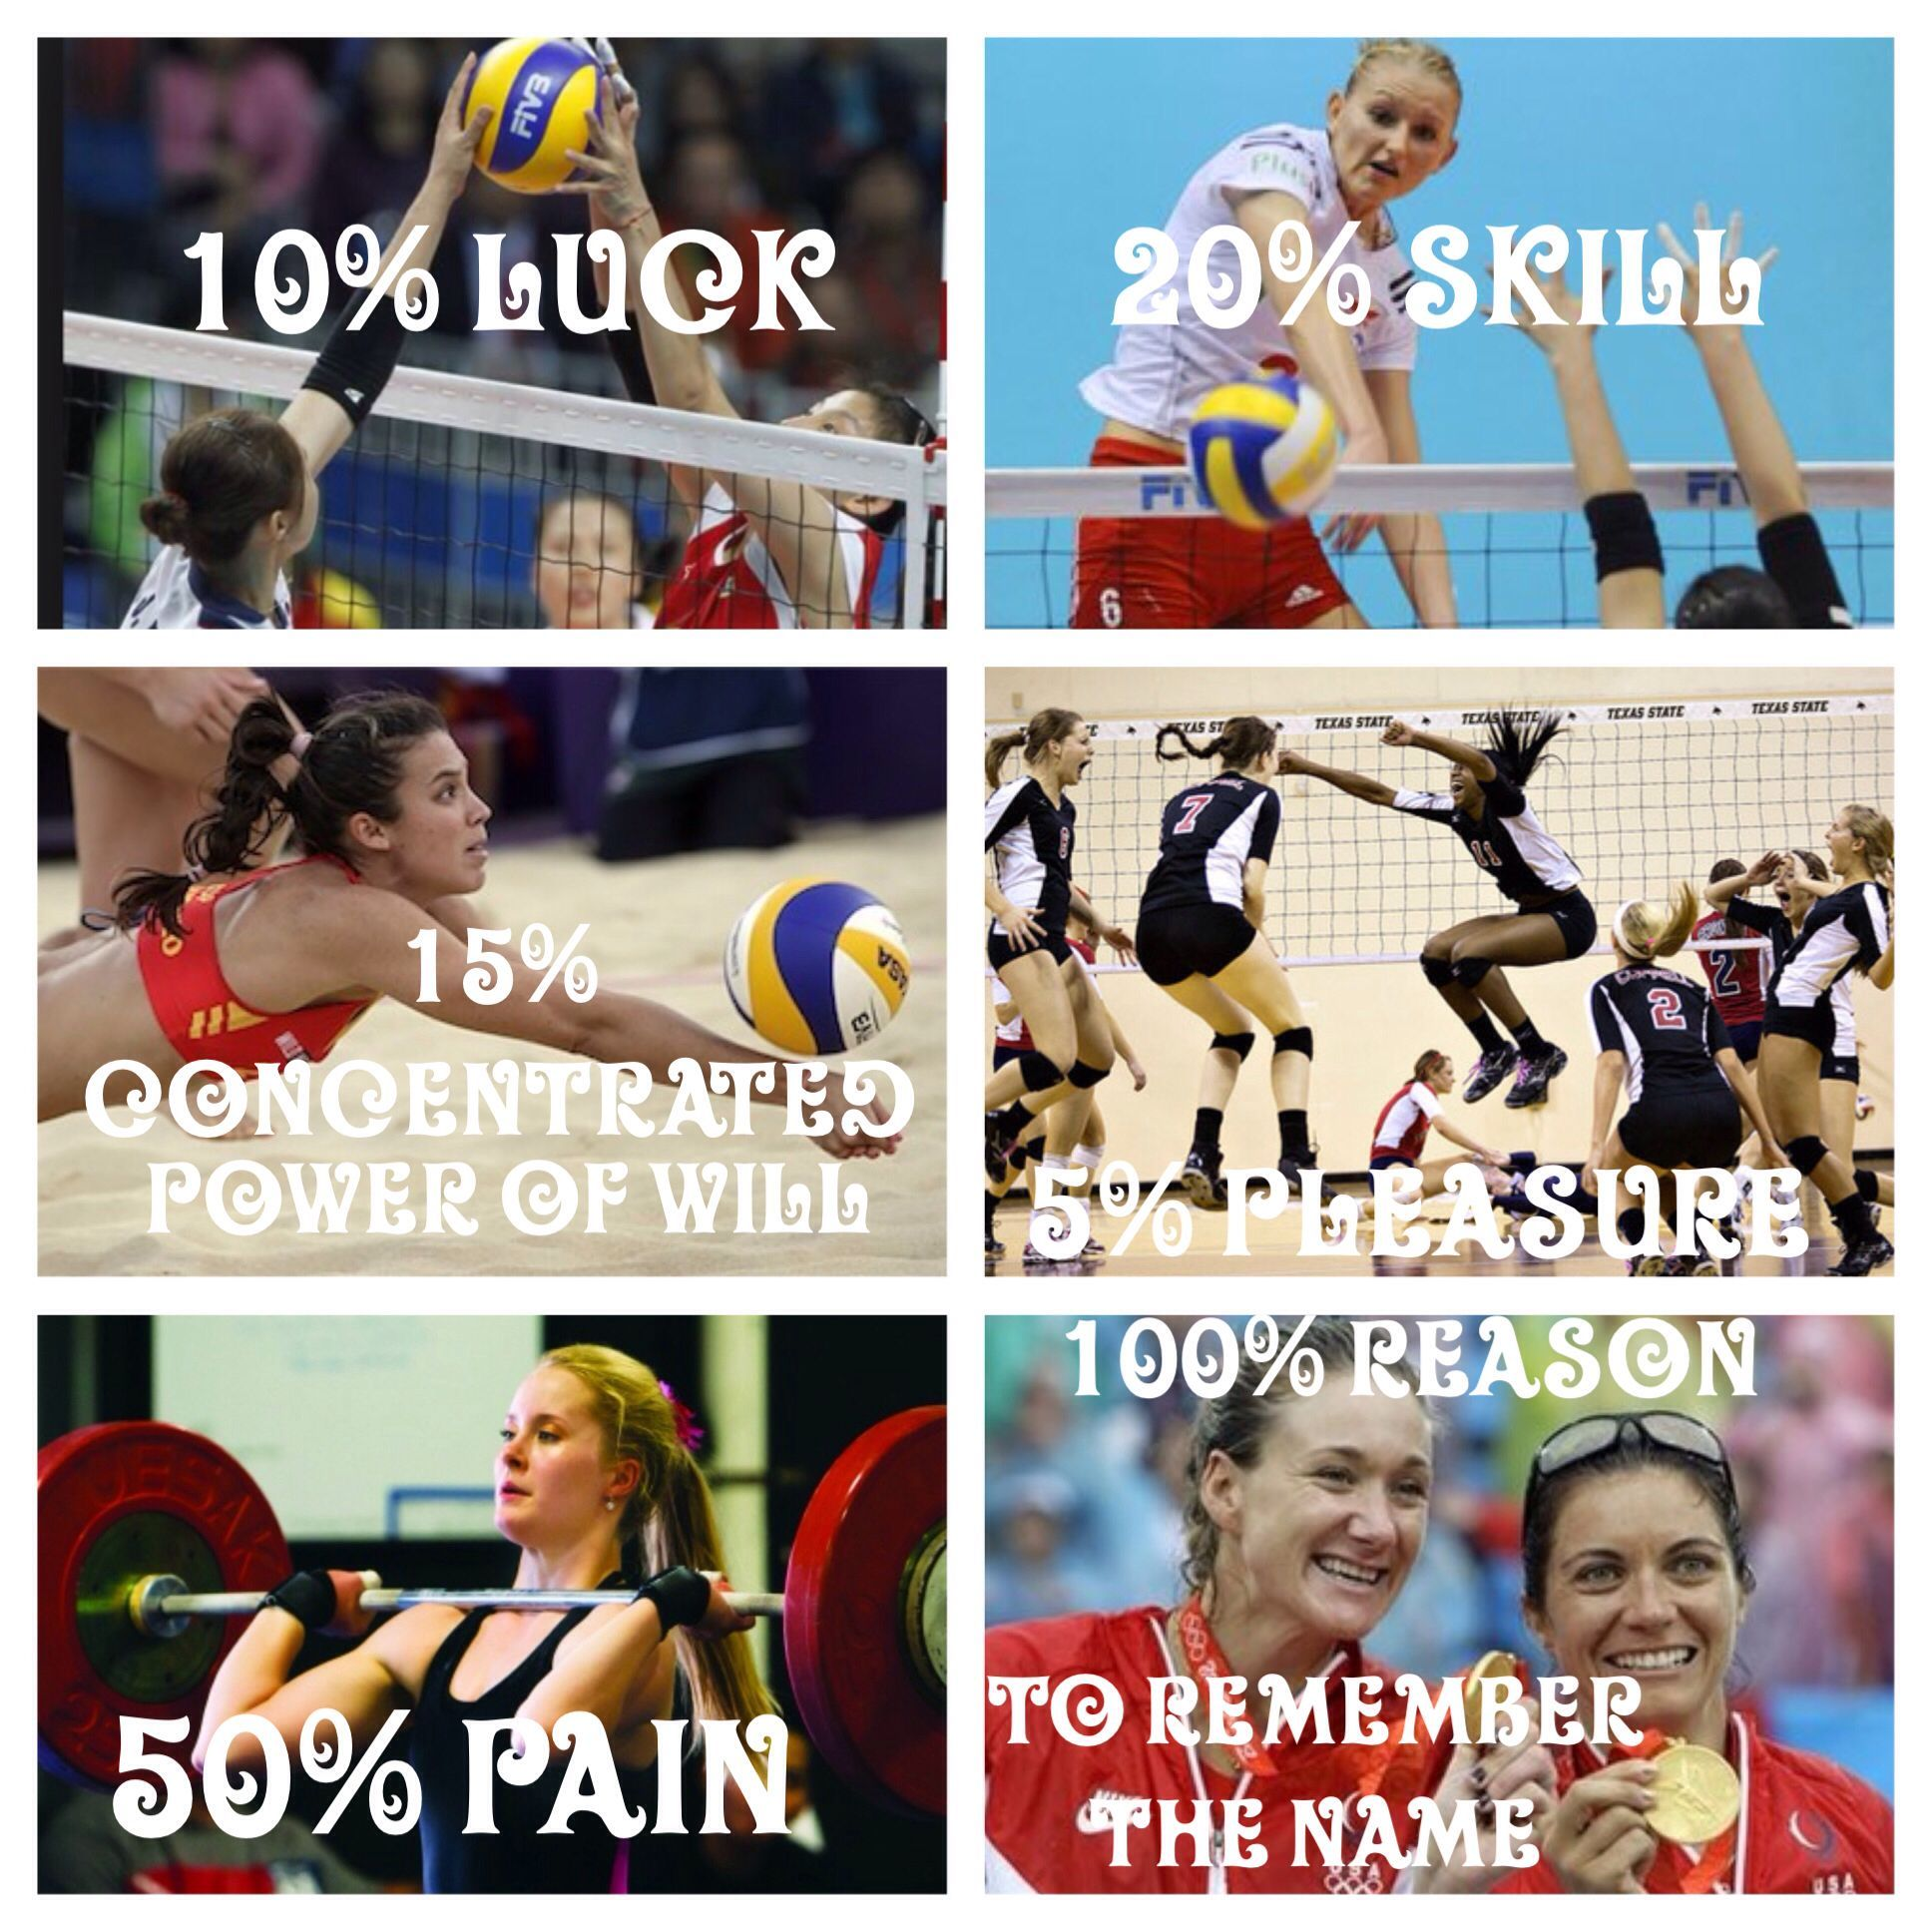 Best Volleyball Matches Volleyball Motivation It May Be Hard At First But When You Set Your Mi In 2020 Volleyball Motivation Volleyball Inspiration Volleyball Workouts